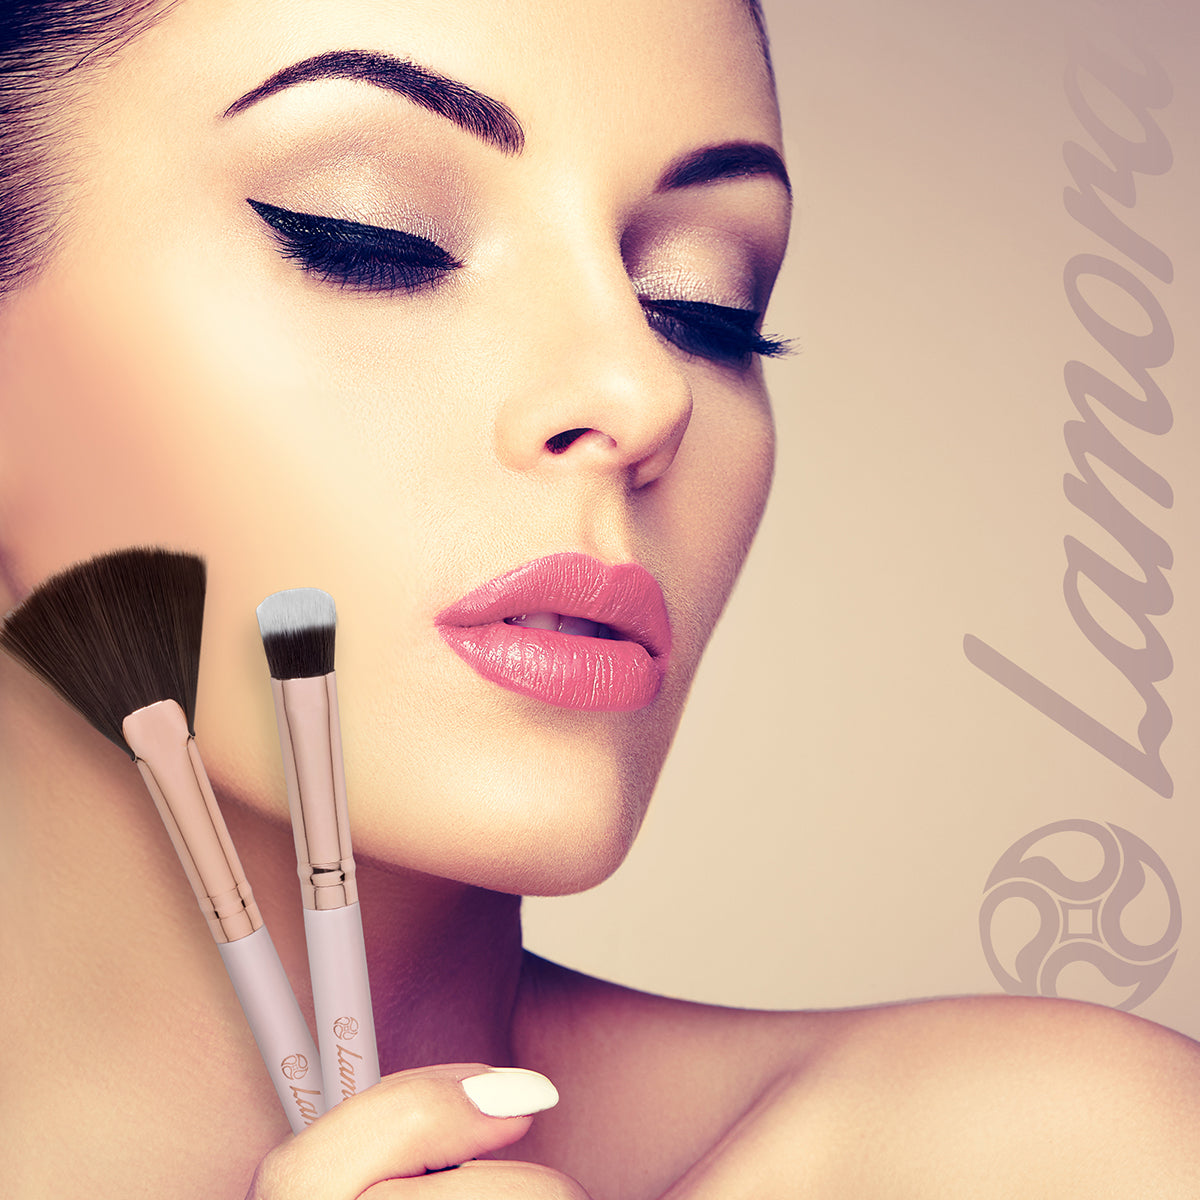 Beautiful woman holding brushes used to contour the face